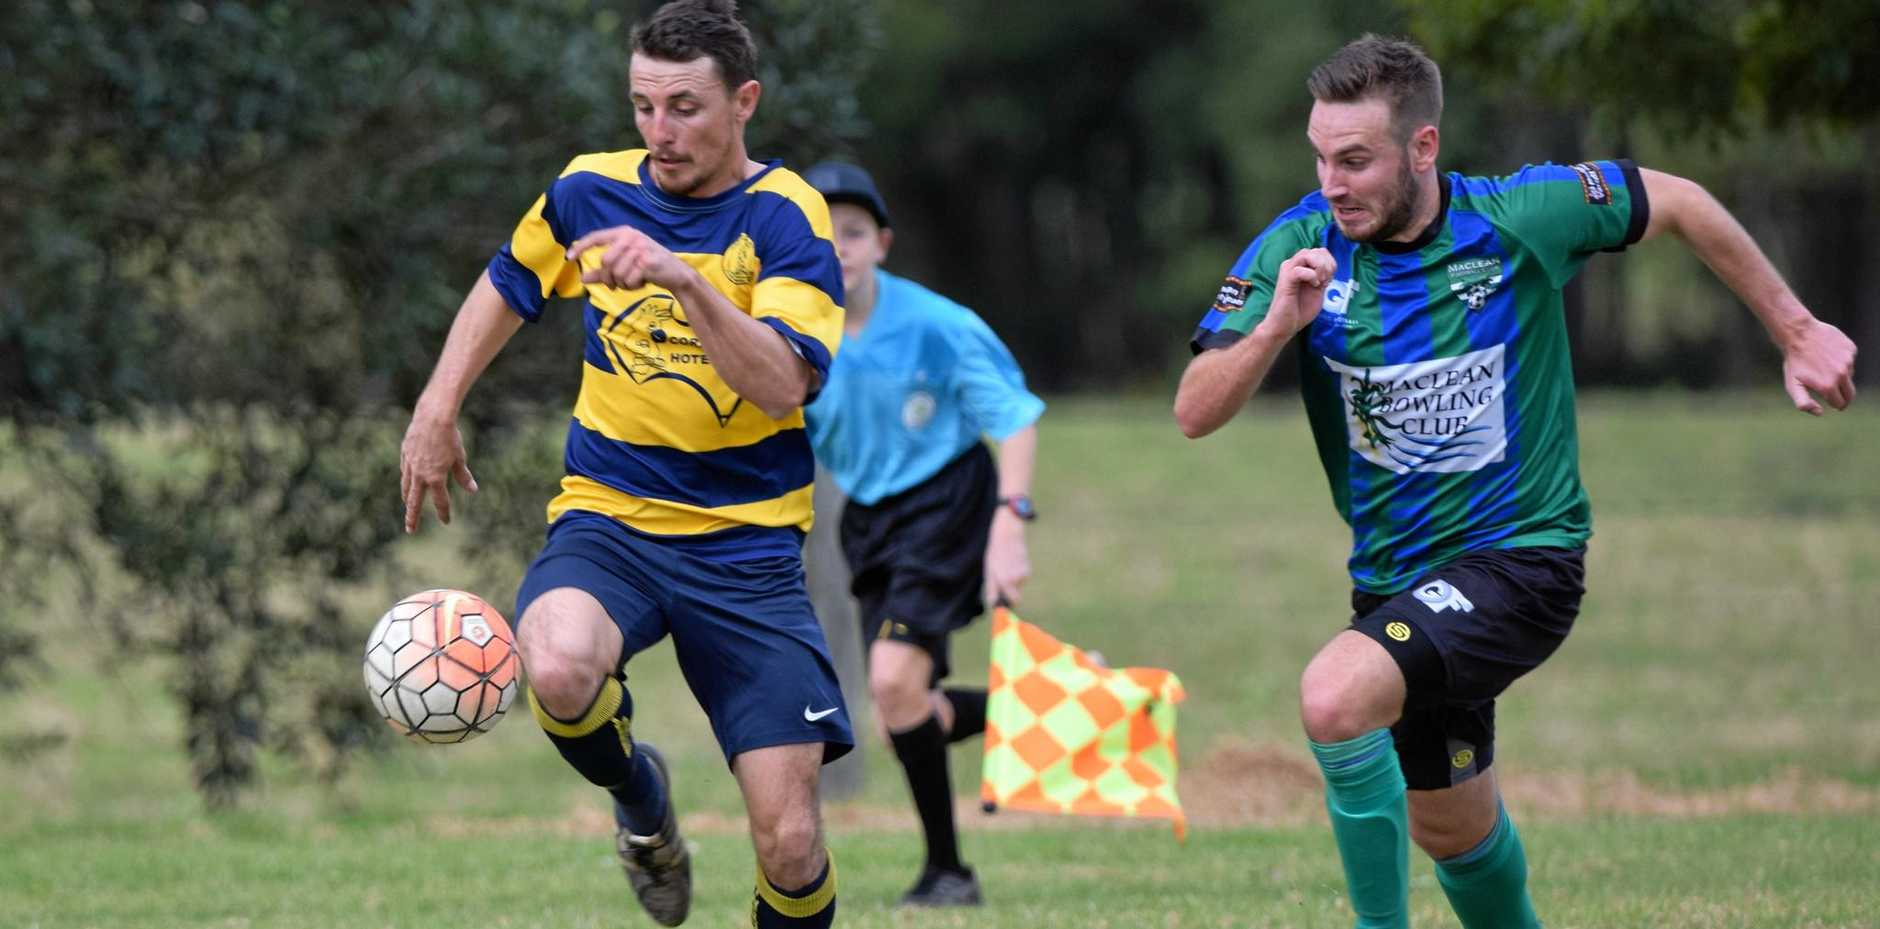 ONE STEP AHEAD: Danny Rohwer breaks away down the right side for Orara Valley in the crucial win over Maclean.